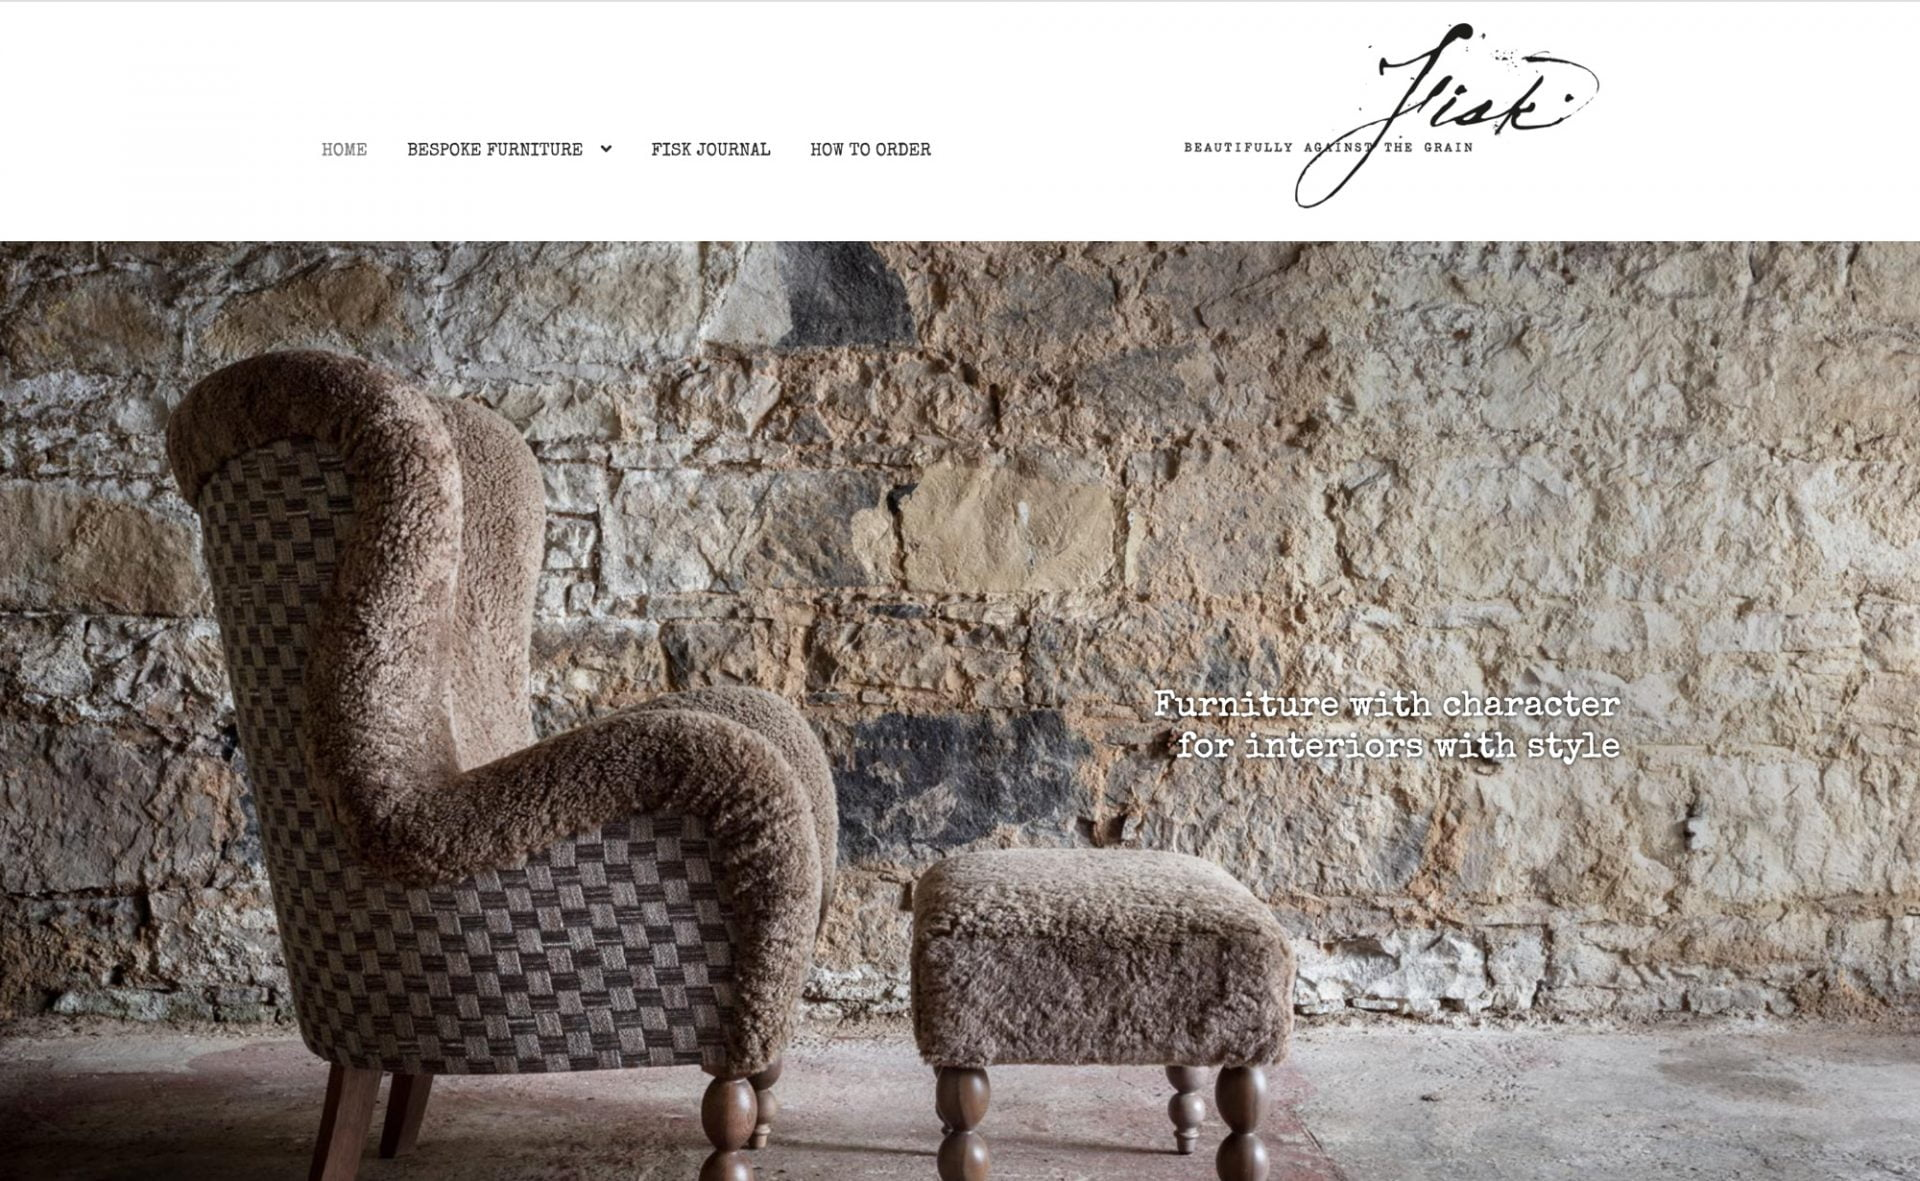 Fisk - Furniture with character for interiors with style